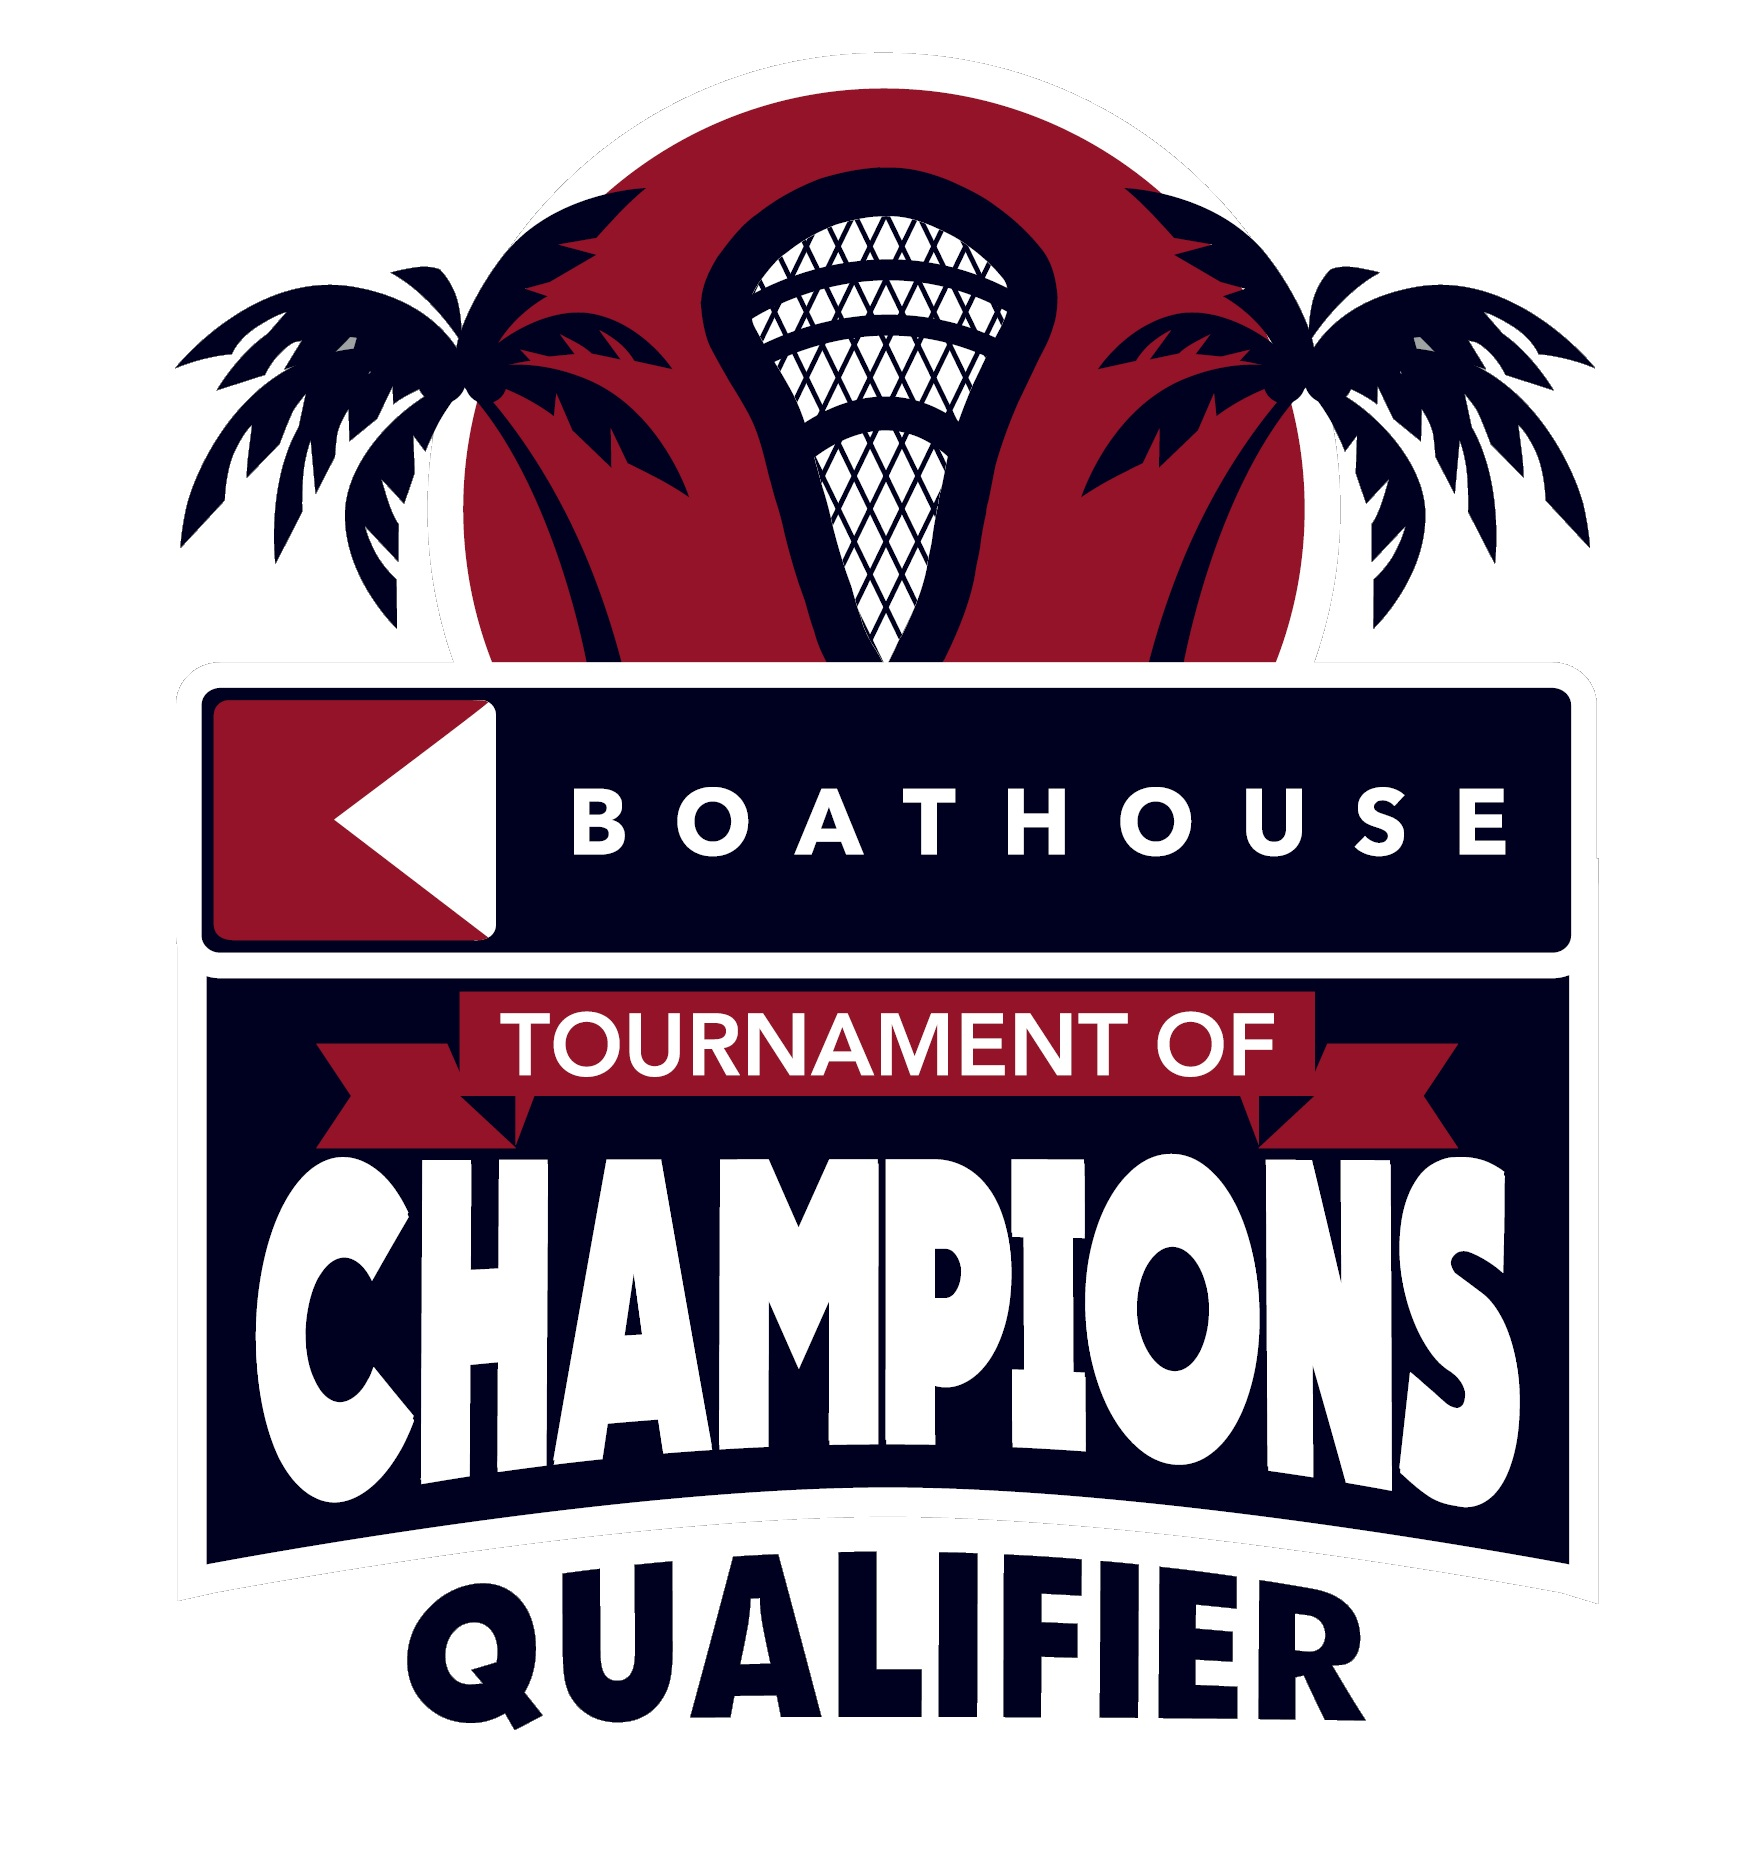 Boathouse Tournament of Champions